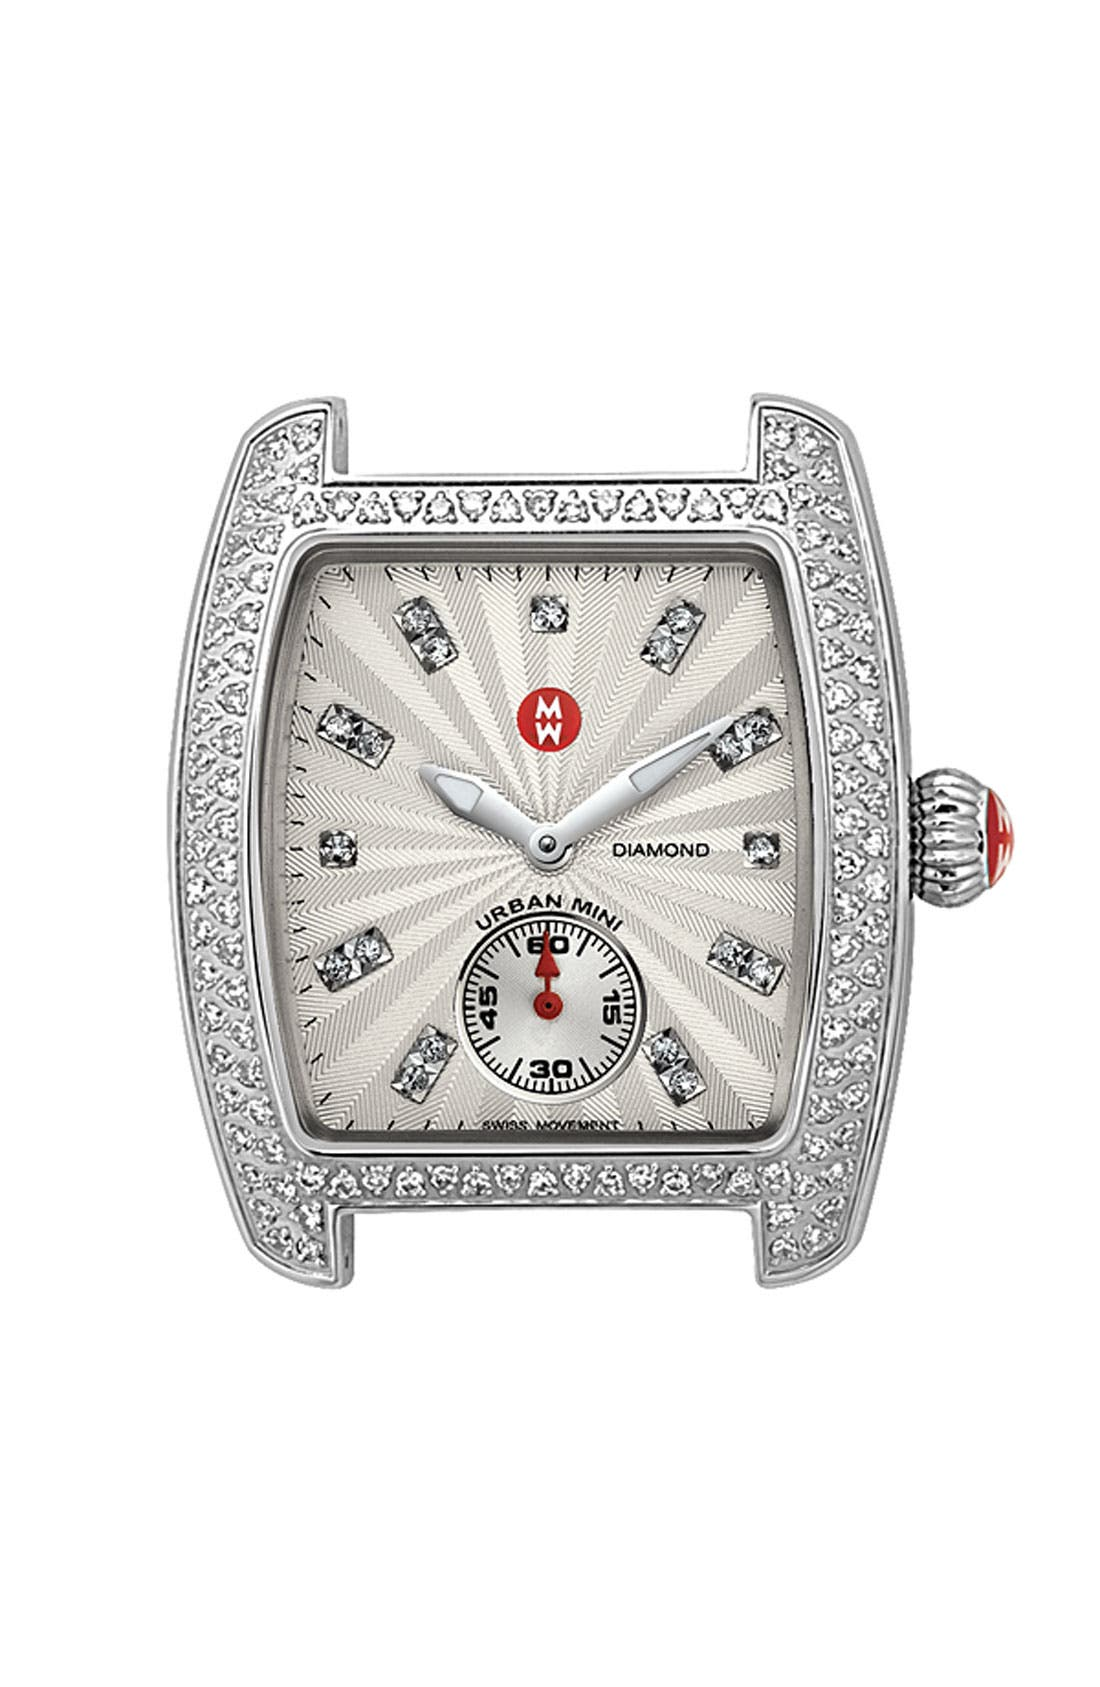 Main Image - MICHELE 'Urban Mini Diamond' Diamond Dial Watch Case, 29mm x 30mm